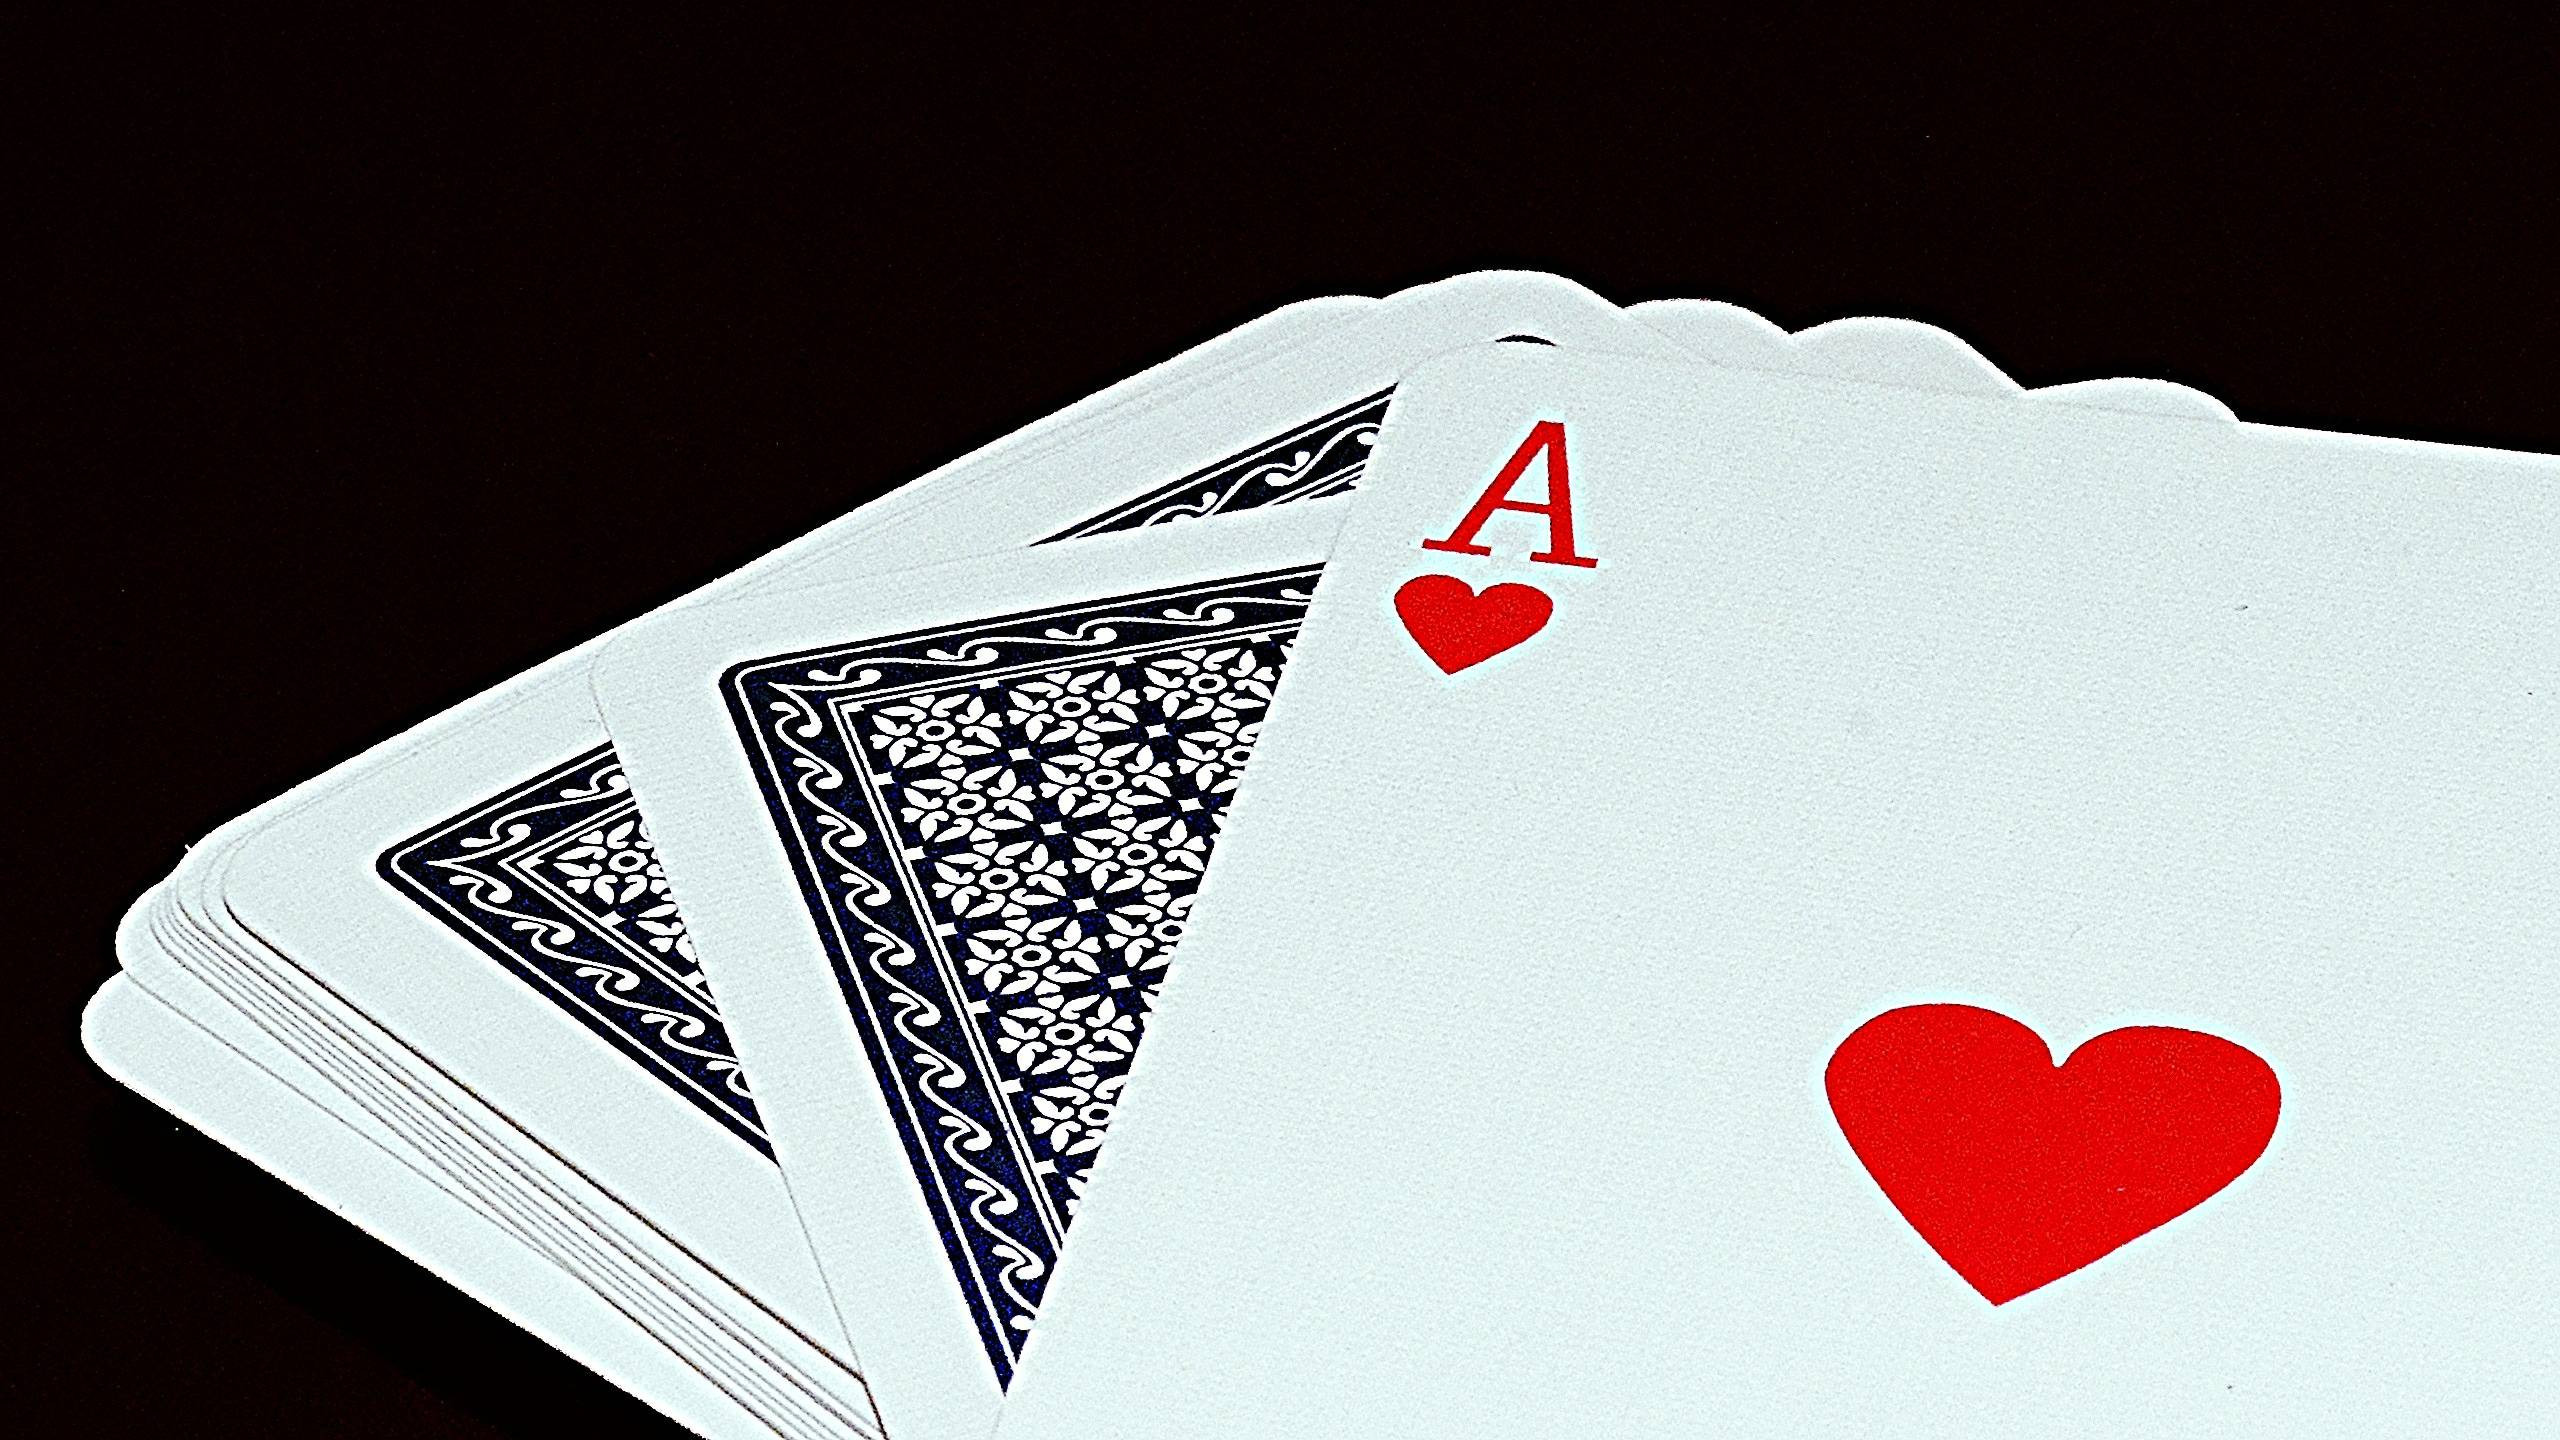 2560x1440 Ace Of Hearts Wallpaper Amazing Playing Cards Wallpapers Wallpaper Cave